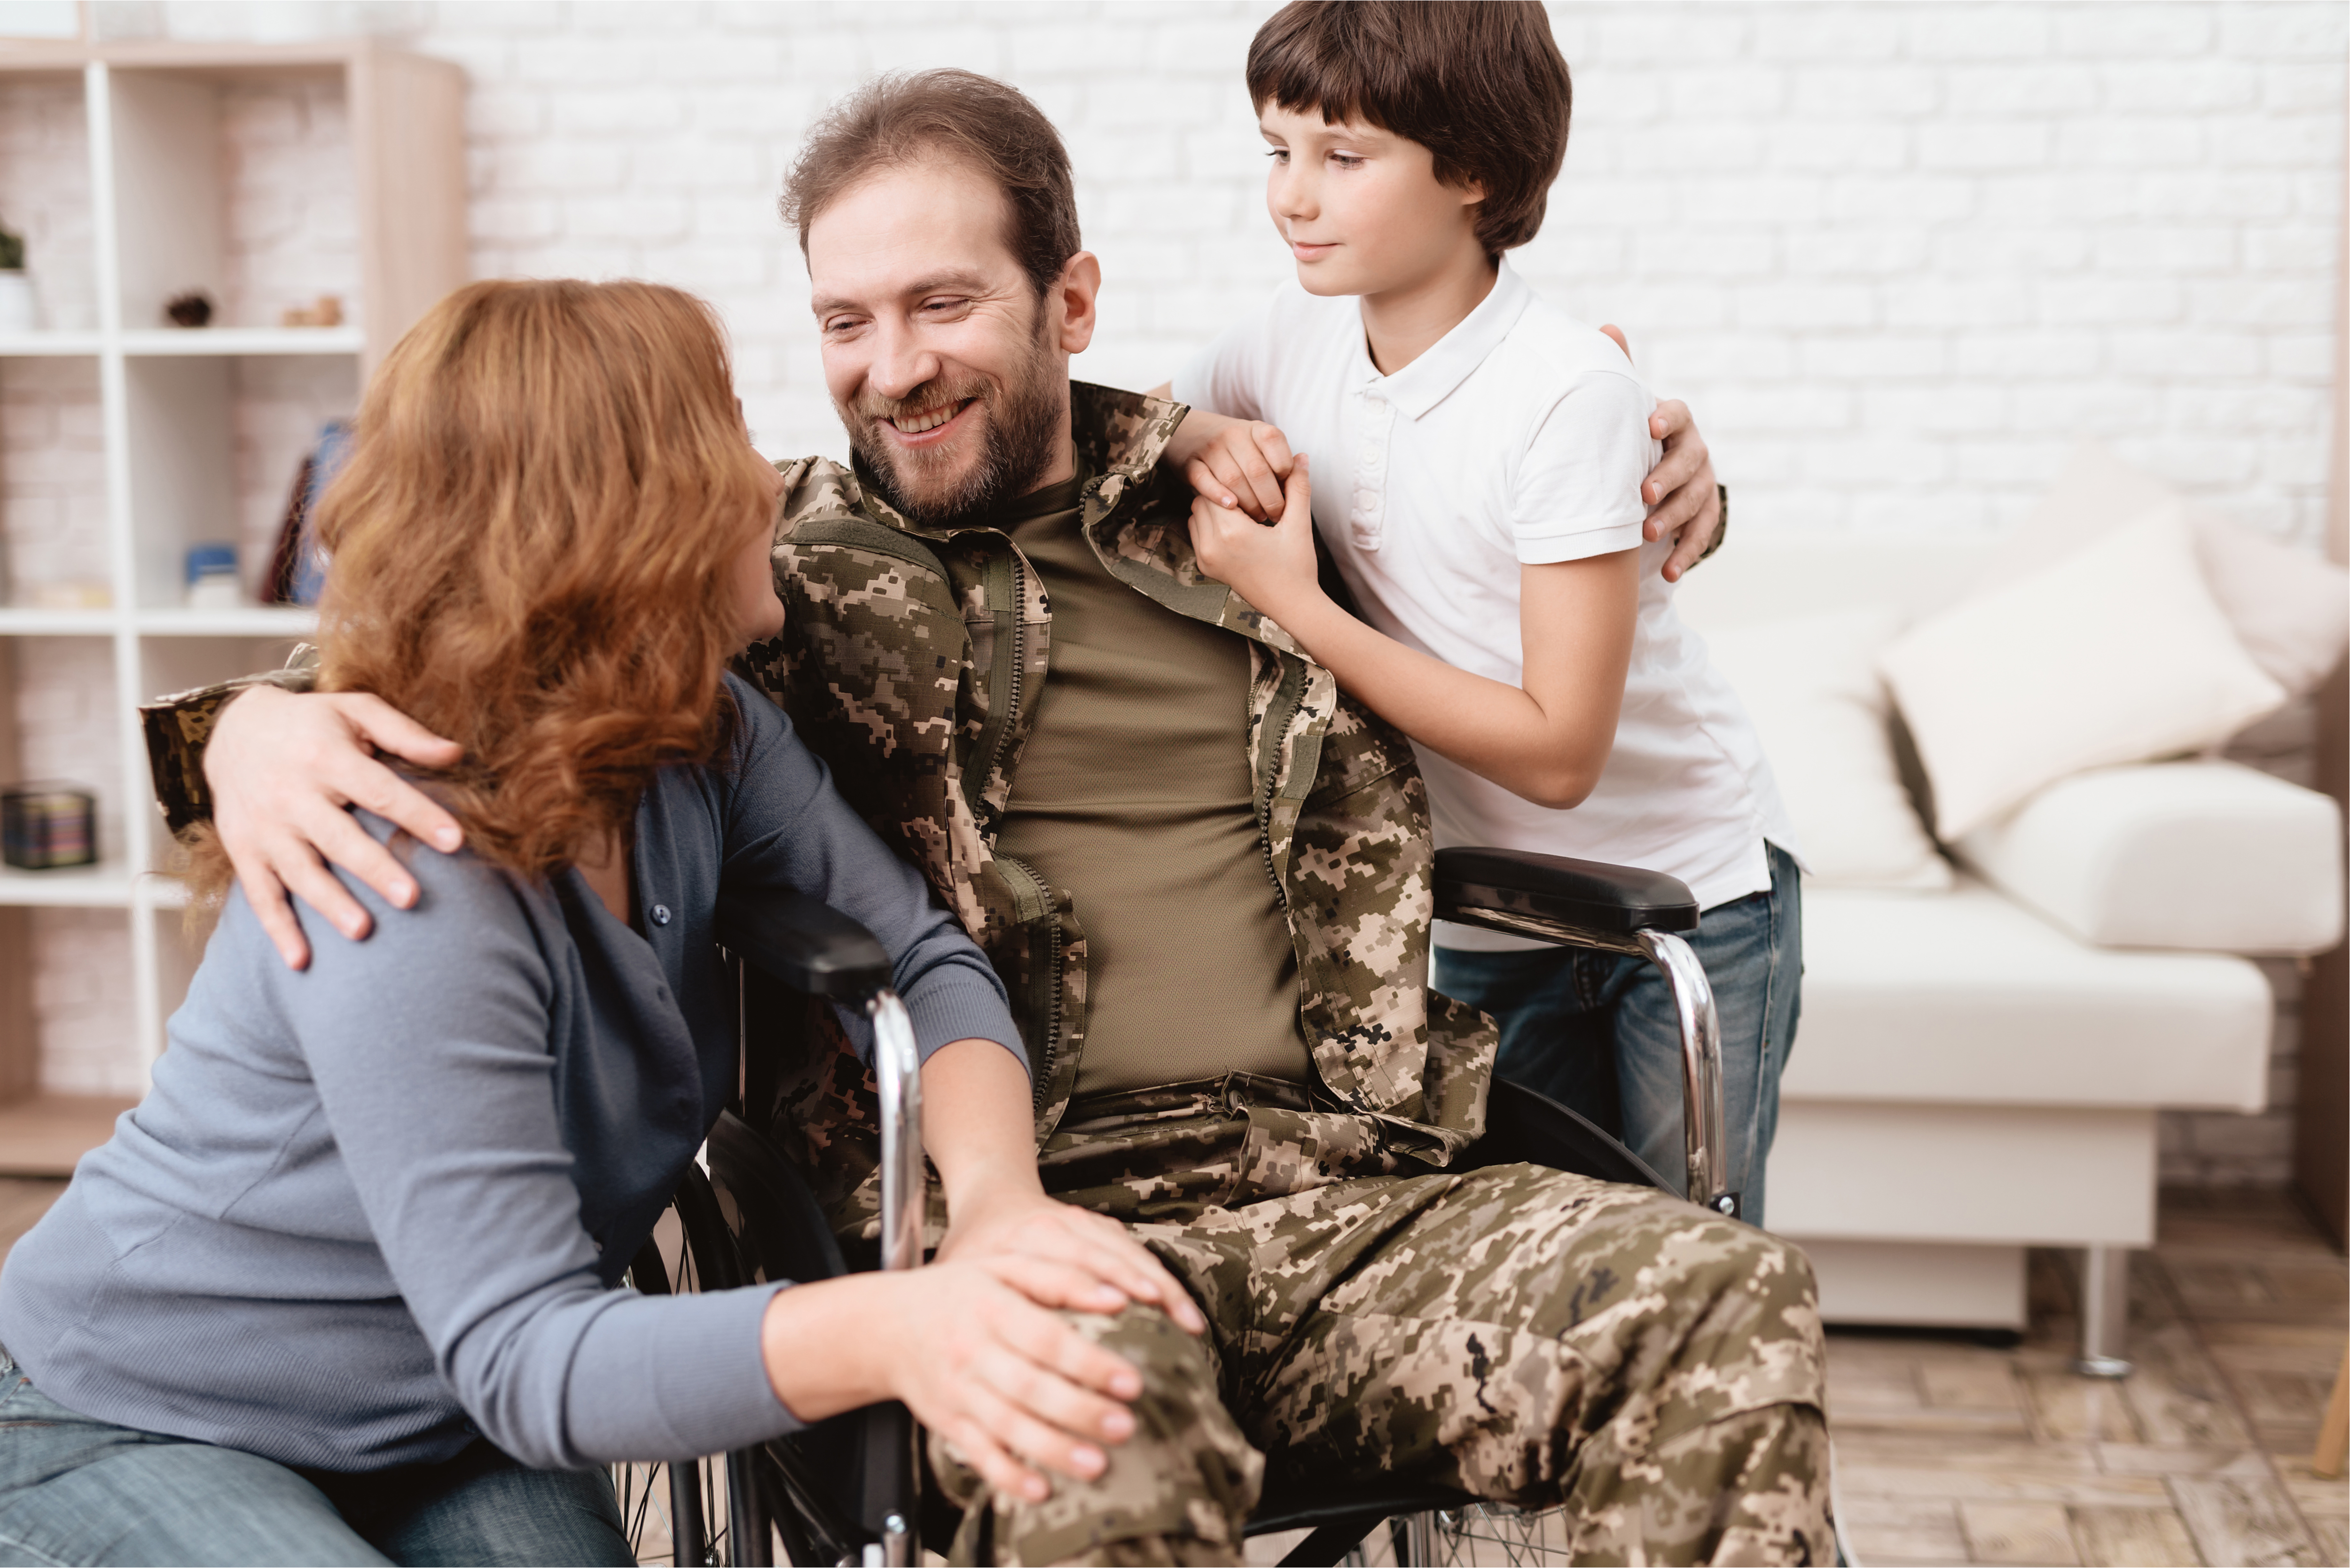 5 Best Places for Disabled Veterans to Live: The Ultimate Guide